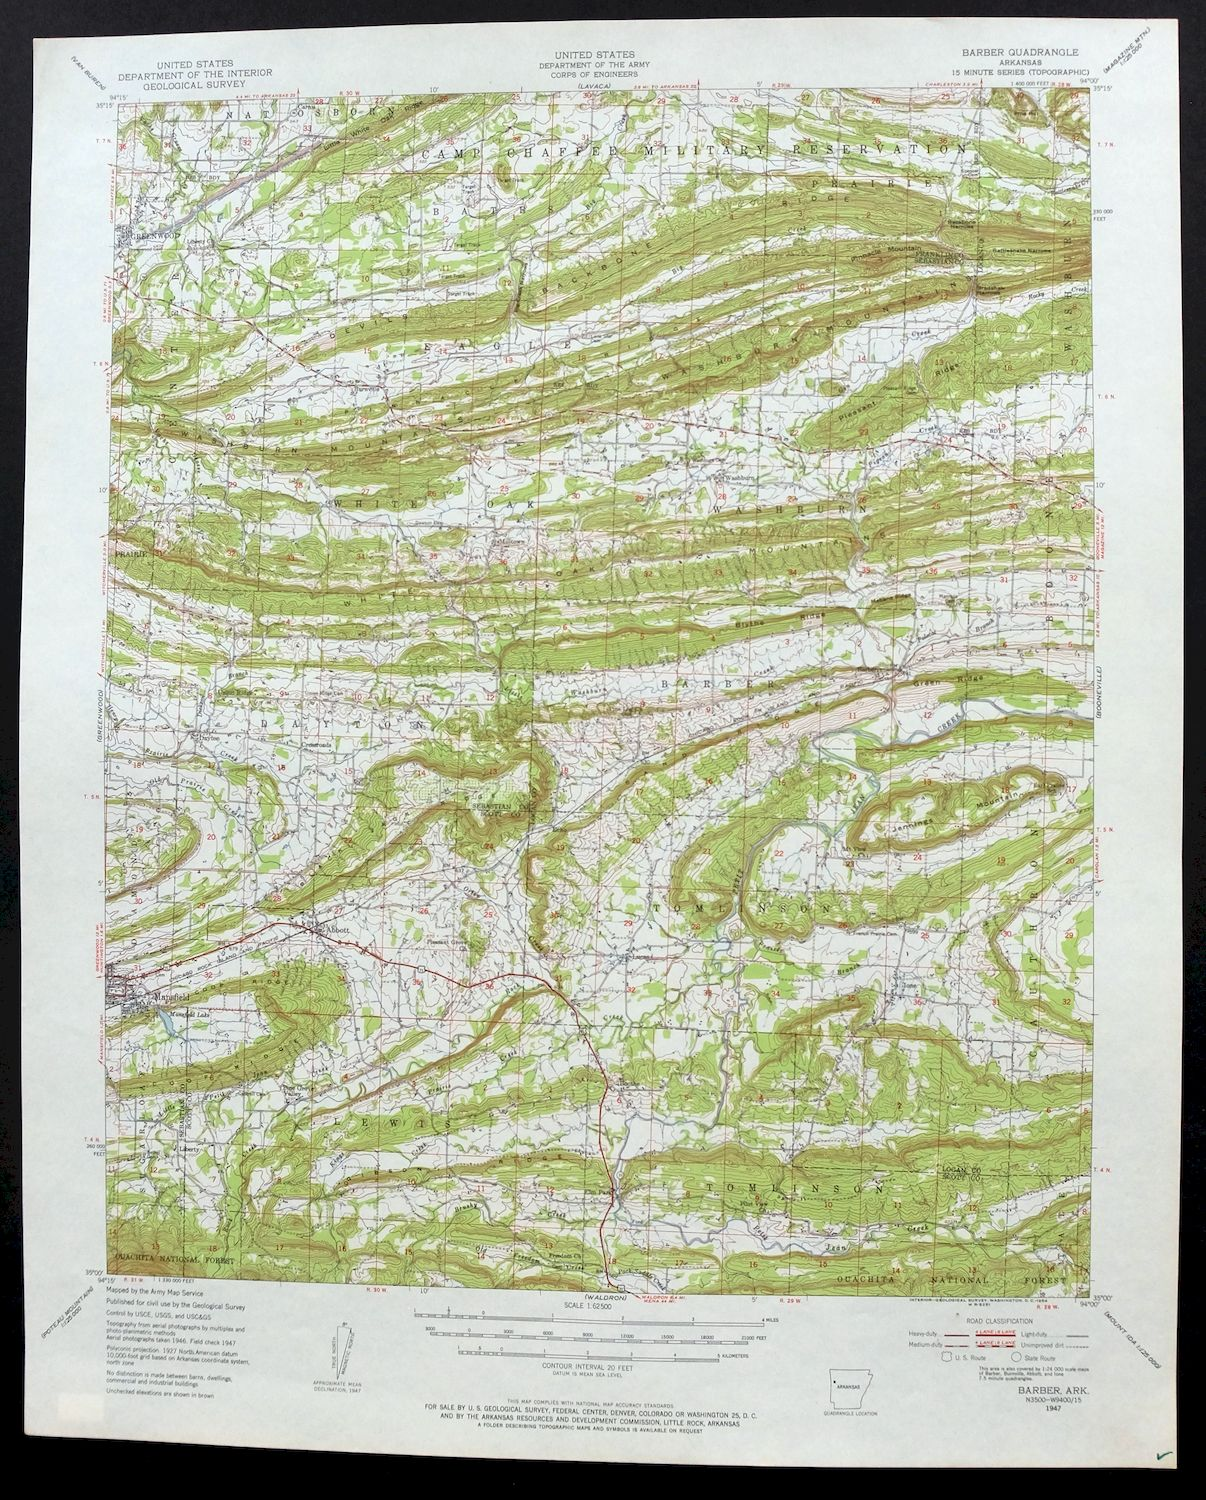 Details about 1947 Barber Arkansas Greenwood Vintage 15-minute USGS  Topographic Topo Map